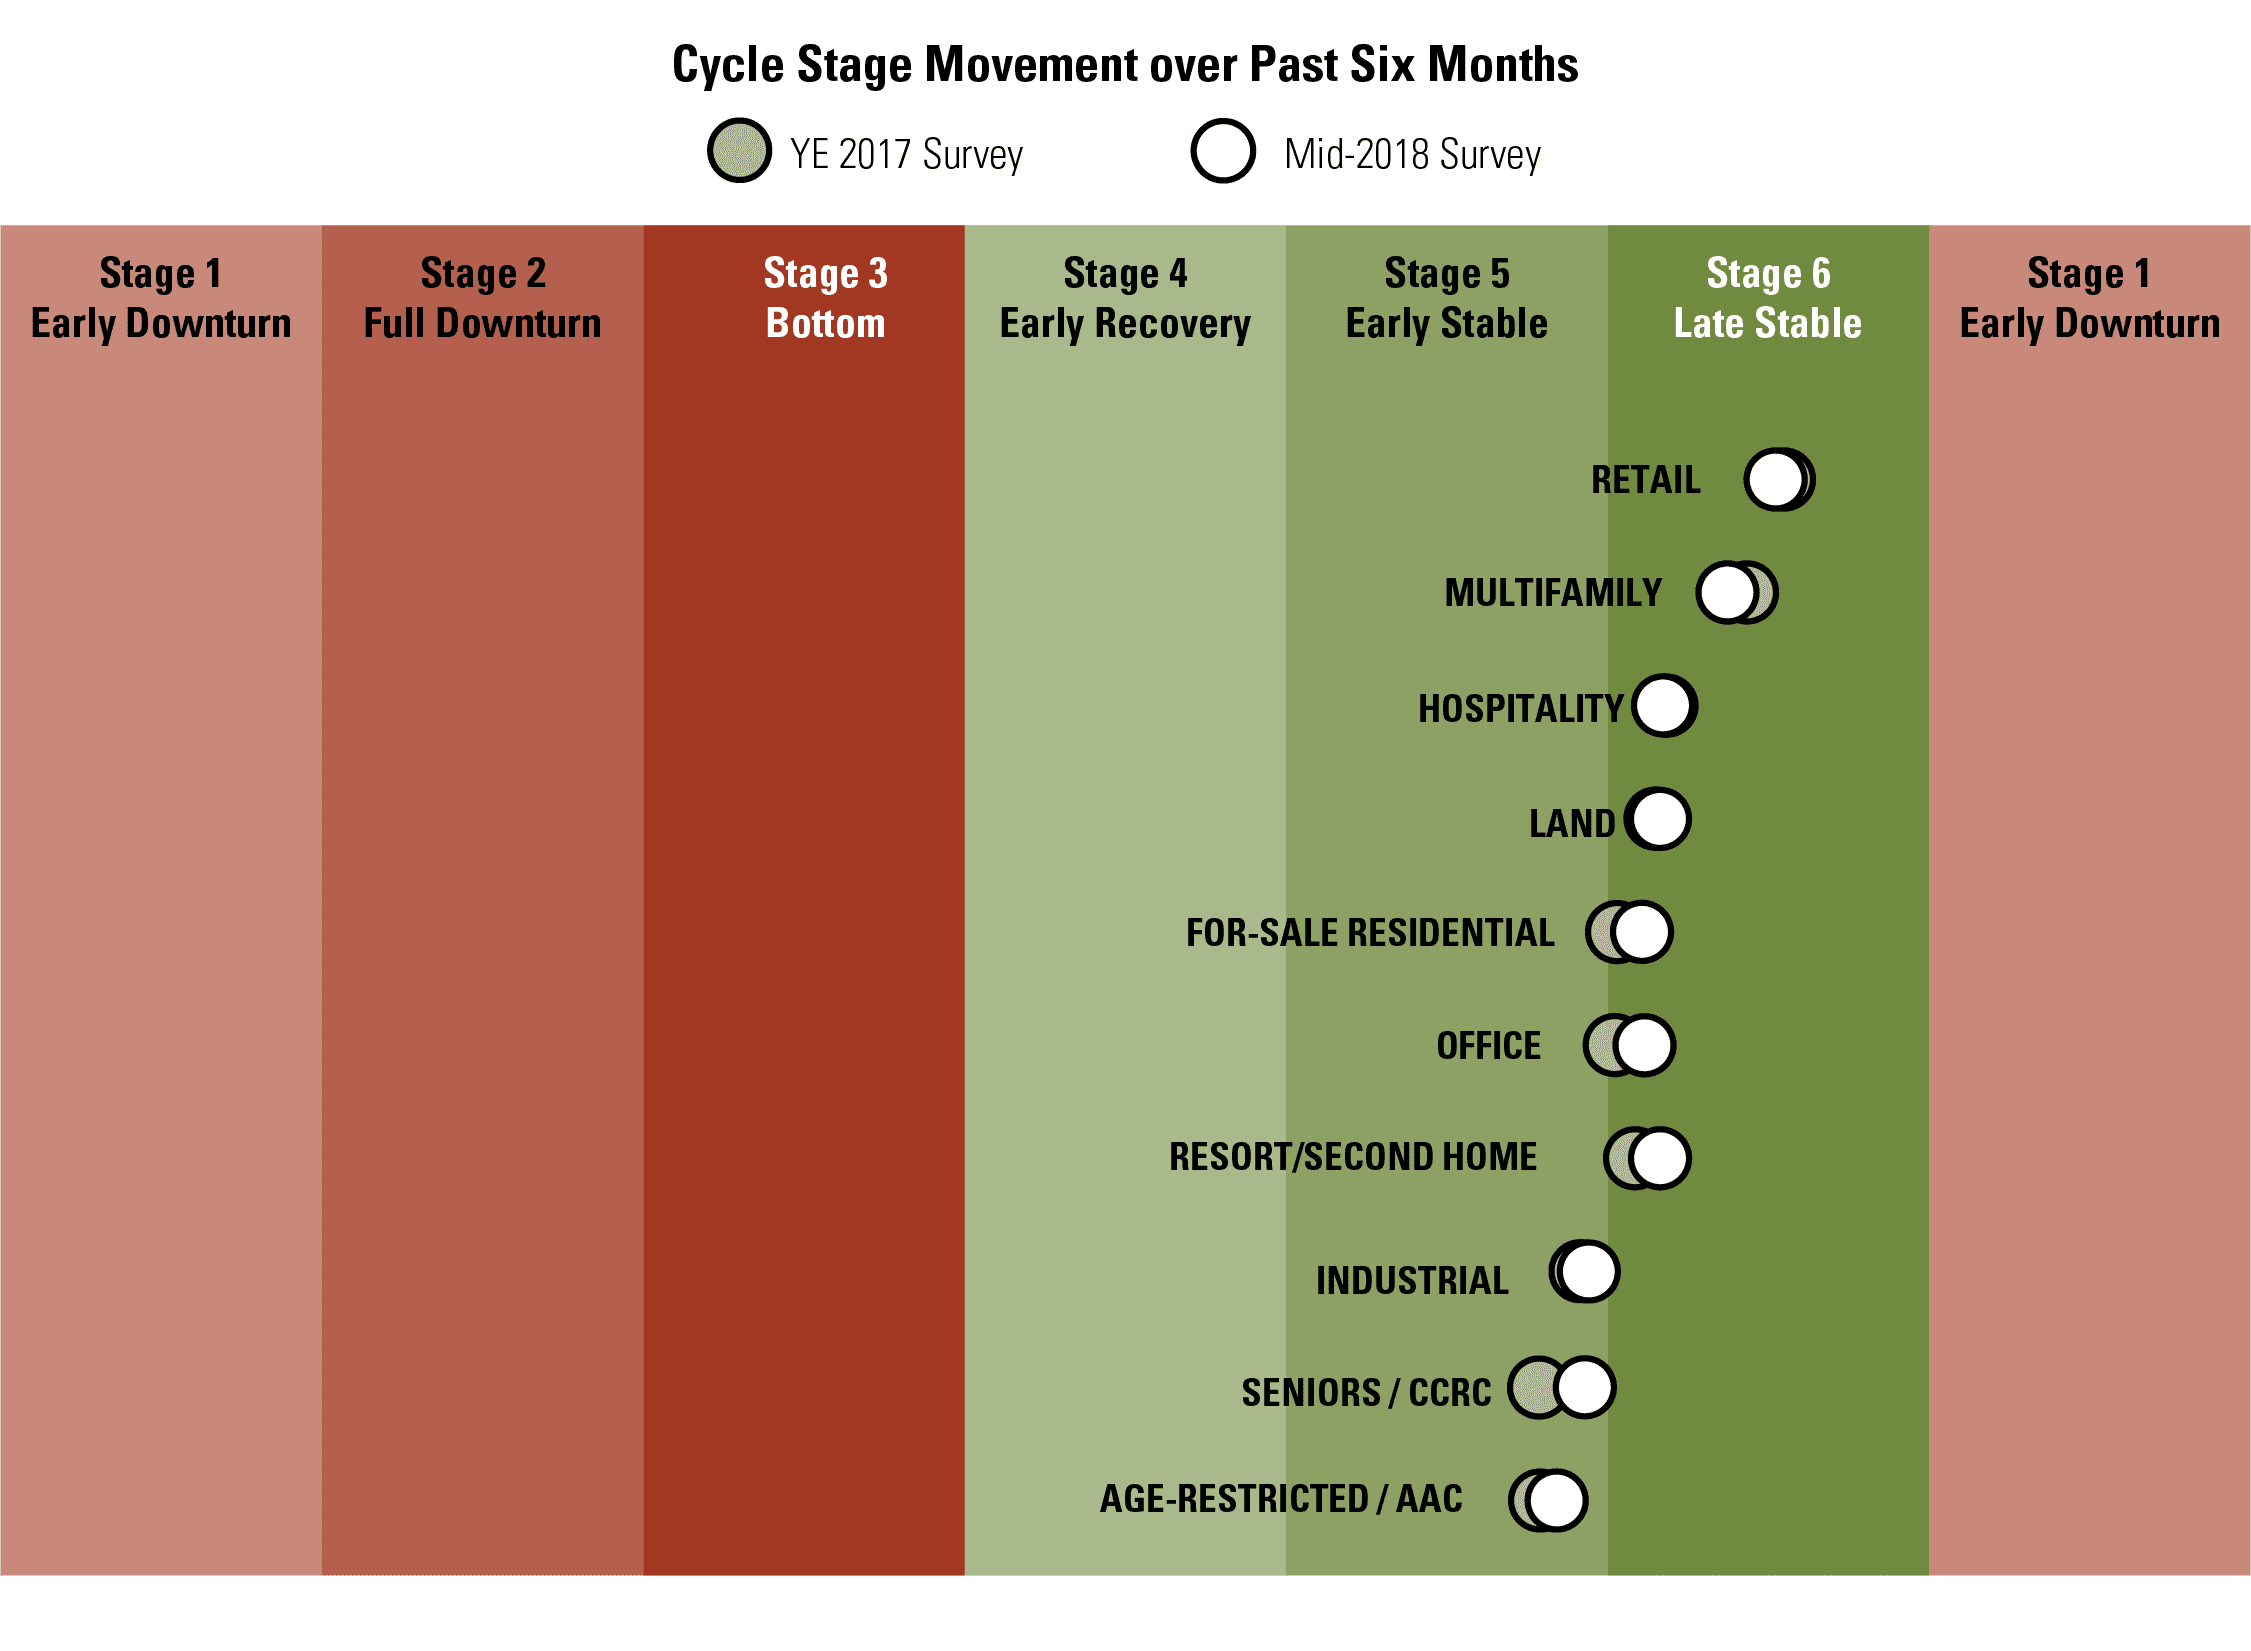 Cycle Stage Movement over Past Six Months